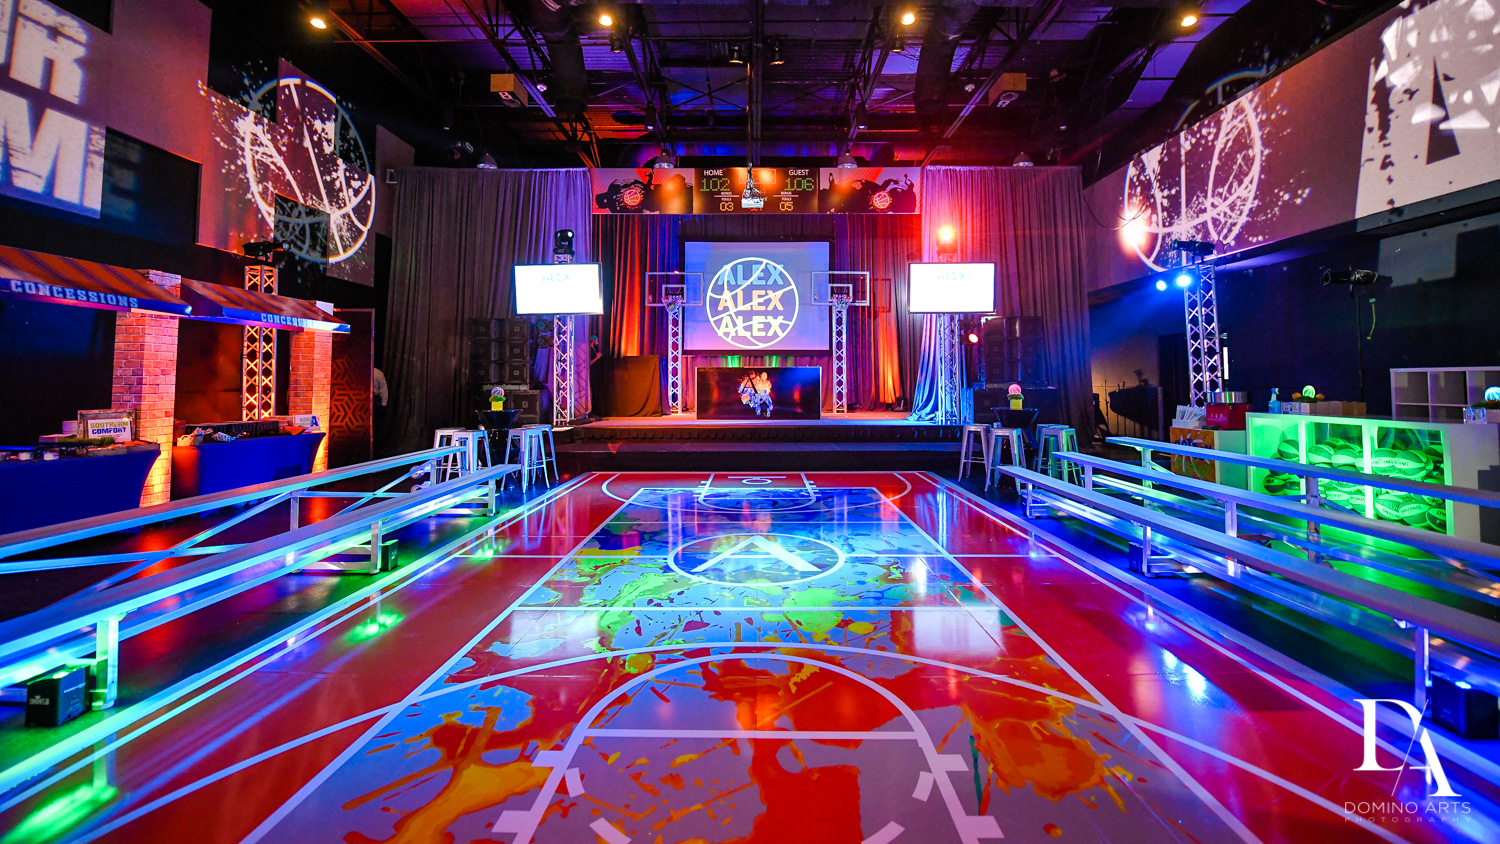 amazing basketball room decor at Fun Basketball Theme Bar Mitzvah at The Fillmore Miami Beach by Domino Arts Photography